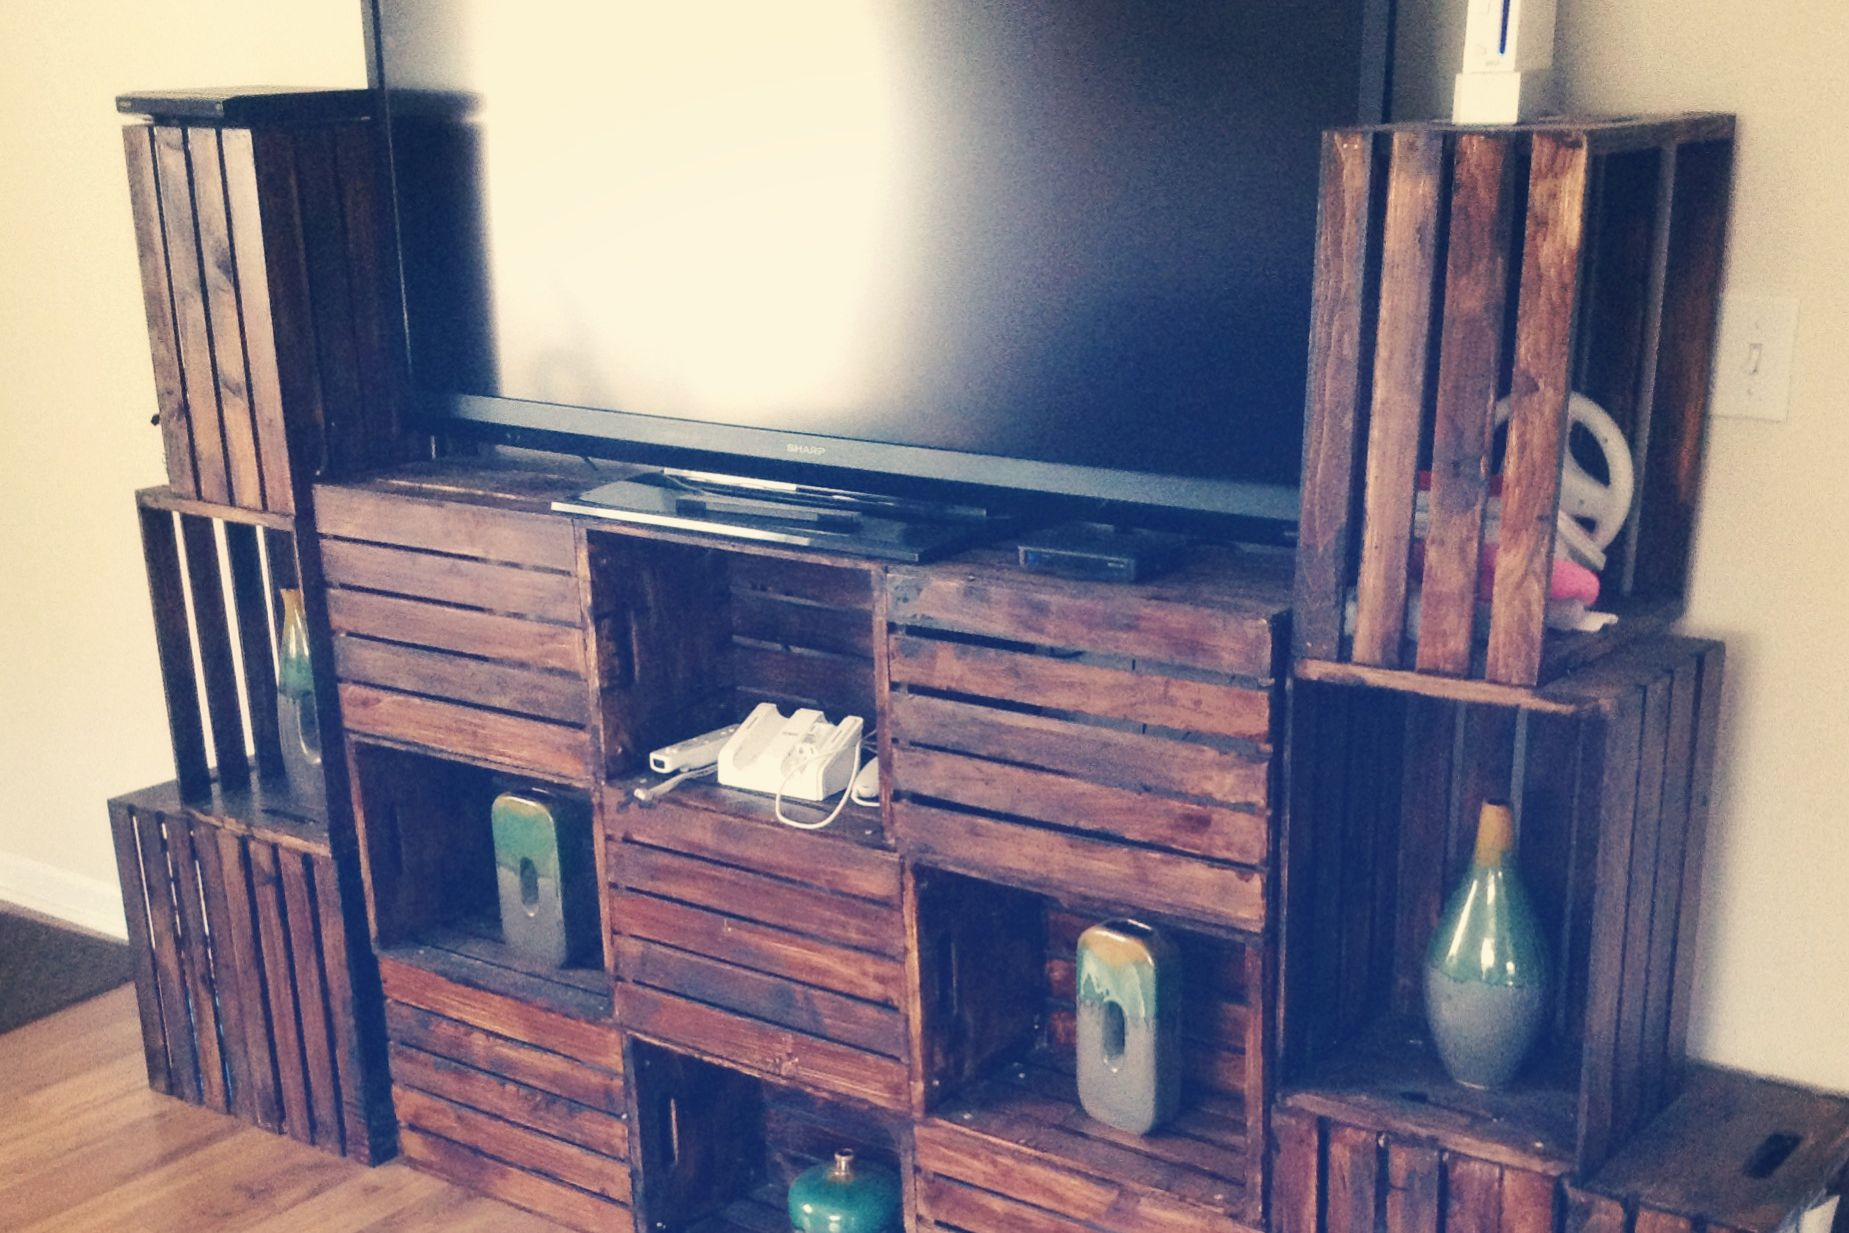 7 Ways To Make Your Own Tv Stand Hide Ugly Cable Boxes And Wires Ikea Hack Home Wiring Cabinet